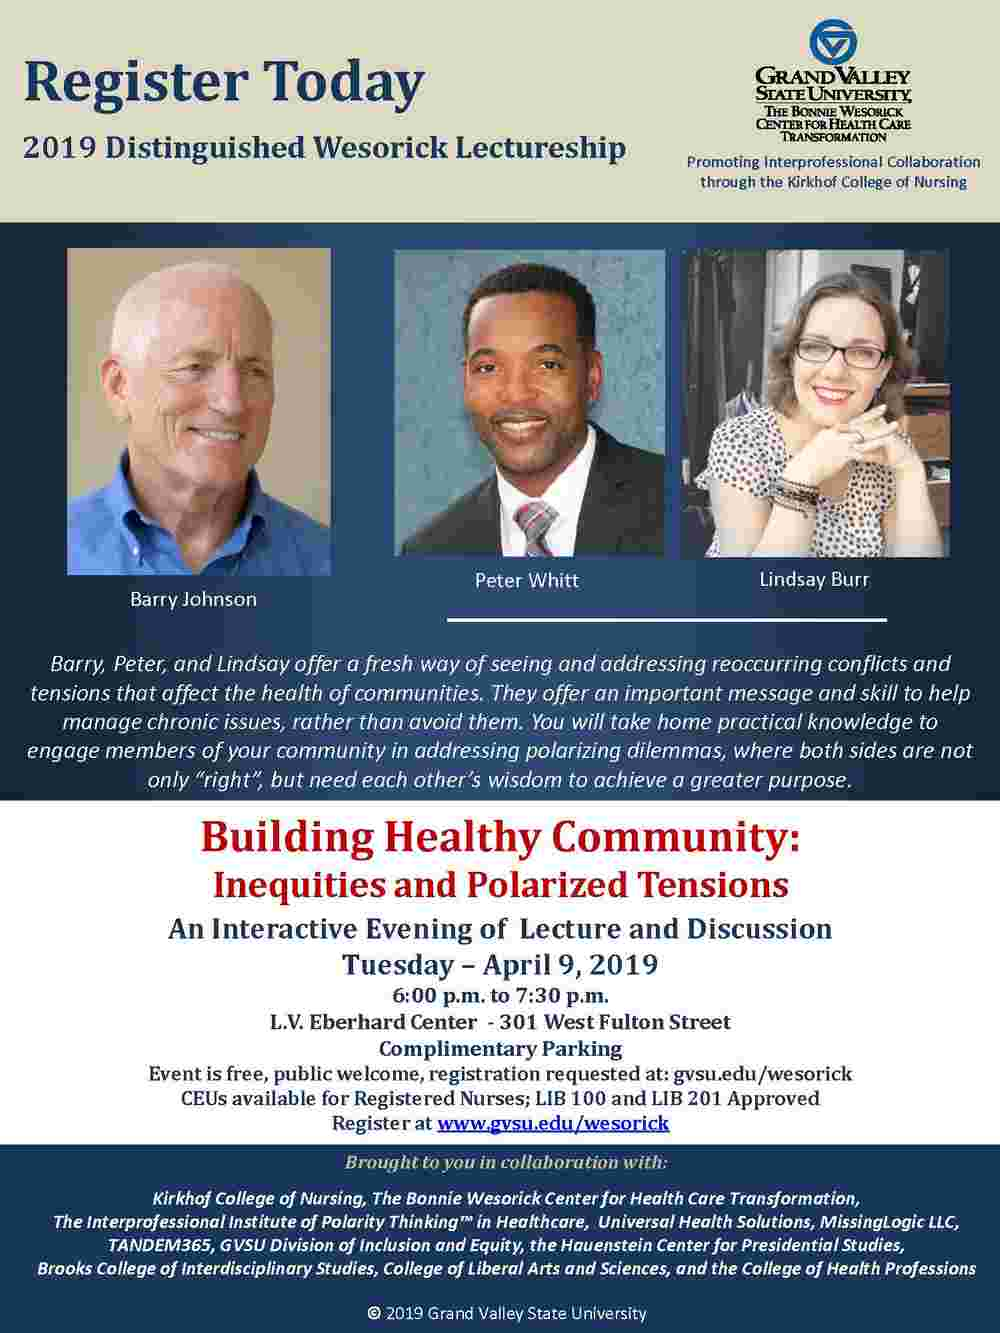 Building Healthy Community: Inequities and Polarized Tensions - April 2019